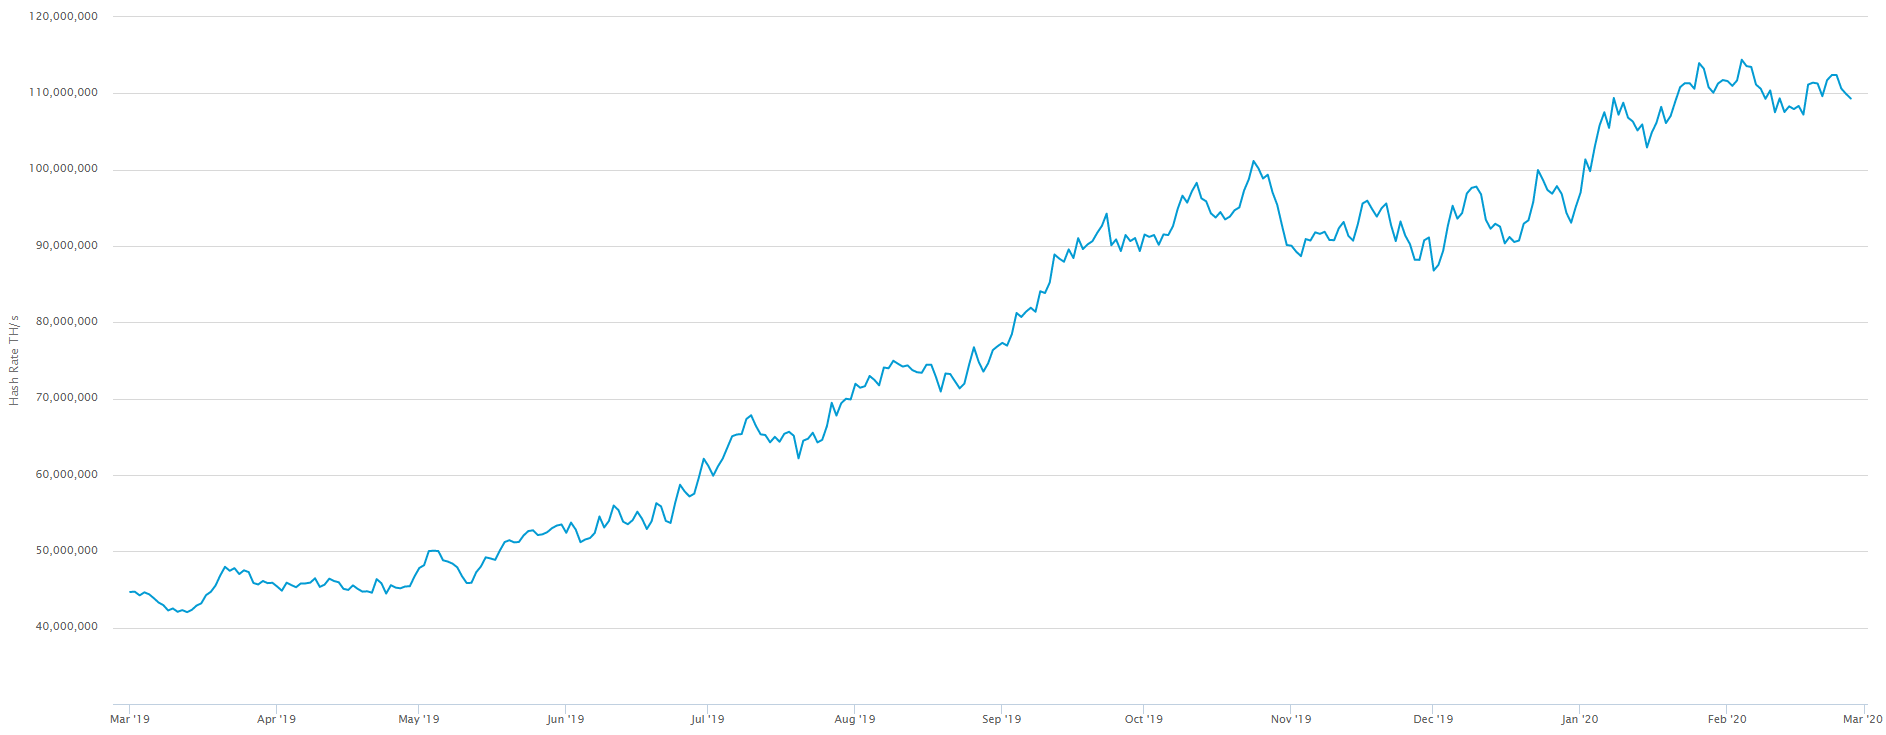 The estimated number of terahashes per second (trillions of hashes per second) the Bitcoin network is performing